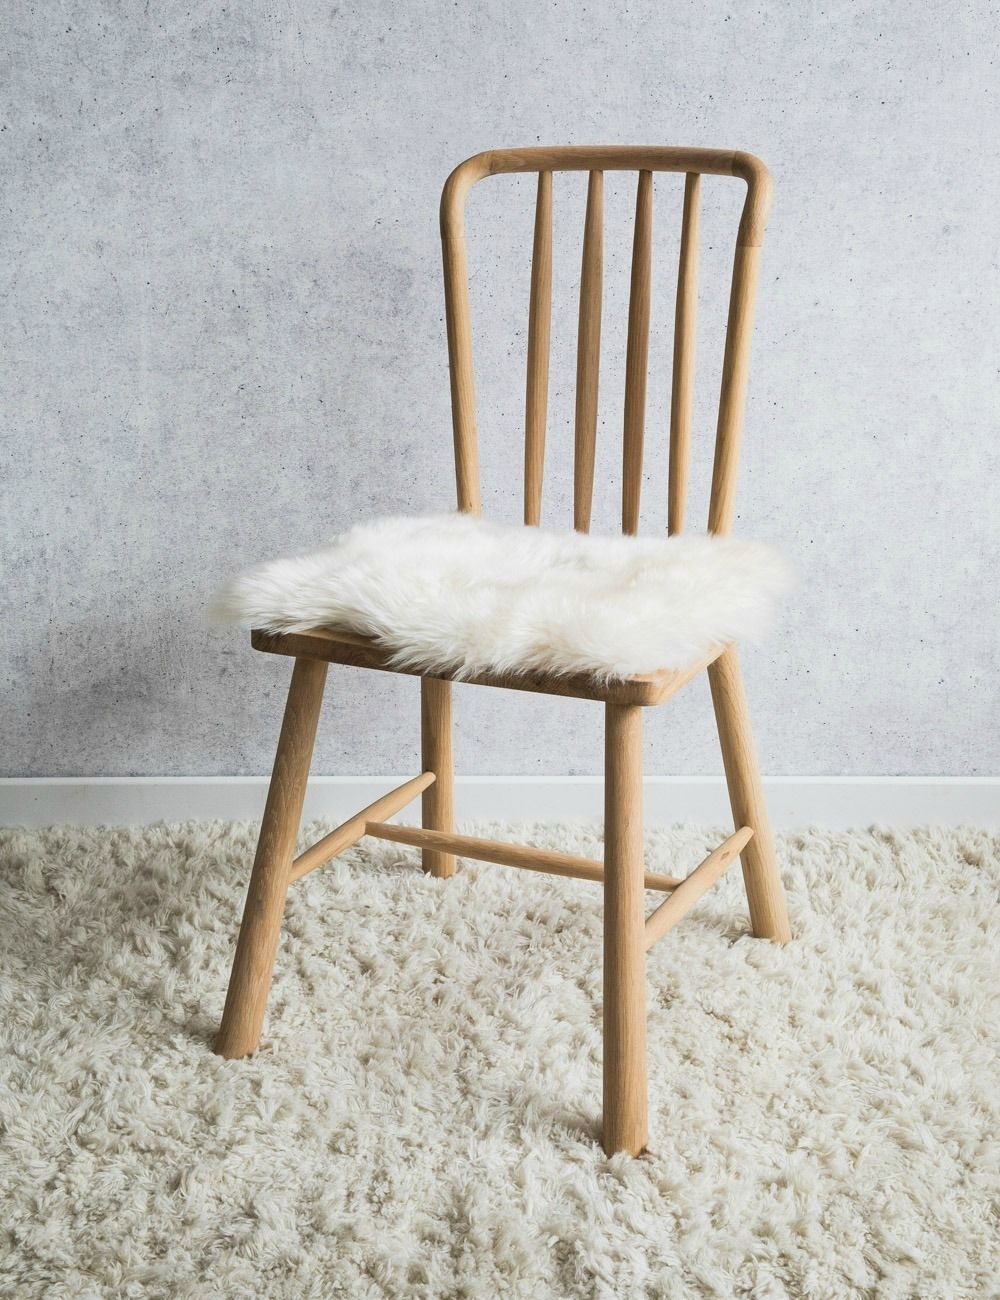 W: 42cm x L: 50cm Sheepskin is dirt repellent - try shaking and airing to clean. Do not machine wash.   If you need to further clean, use lukewarm water and a mild detergent.   Never dry by a radiator.  Restore shine by brushing with a soft brush.